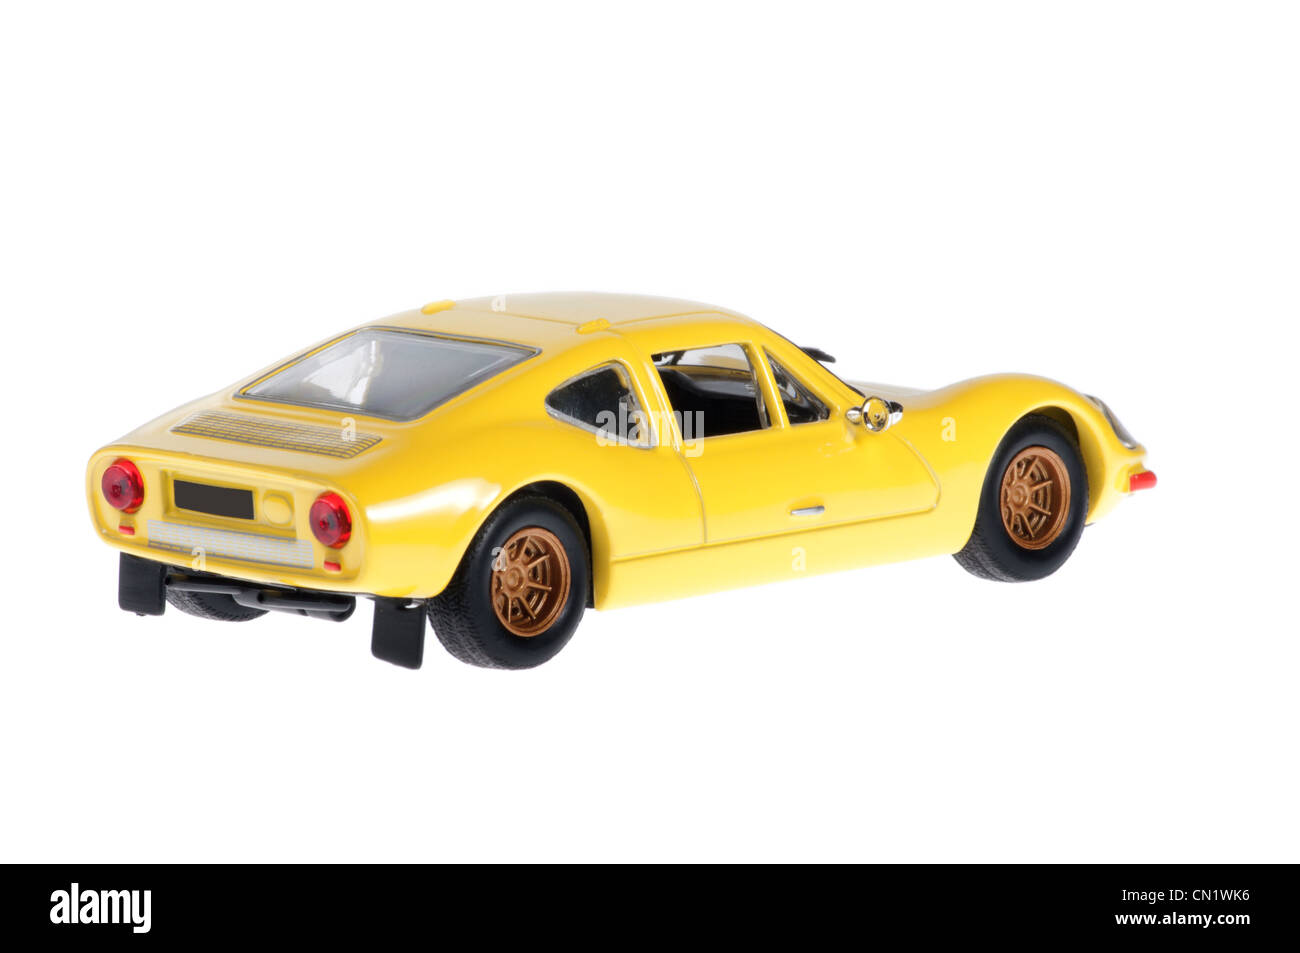 Yellow melkus sport old car. - Stock Image